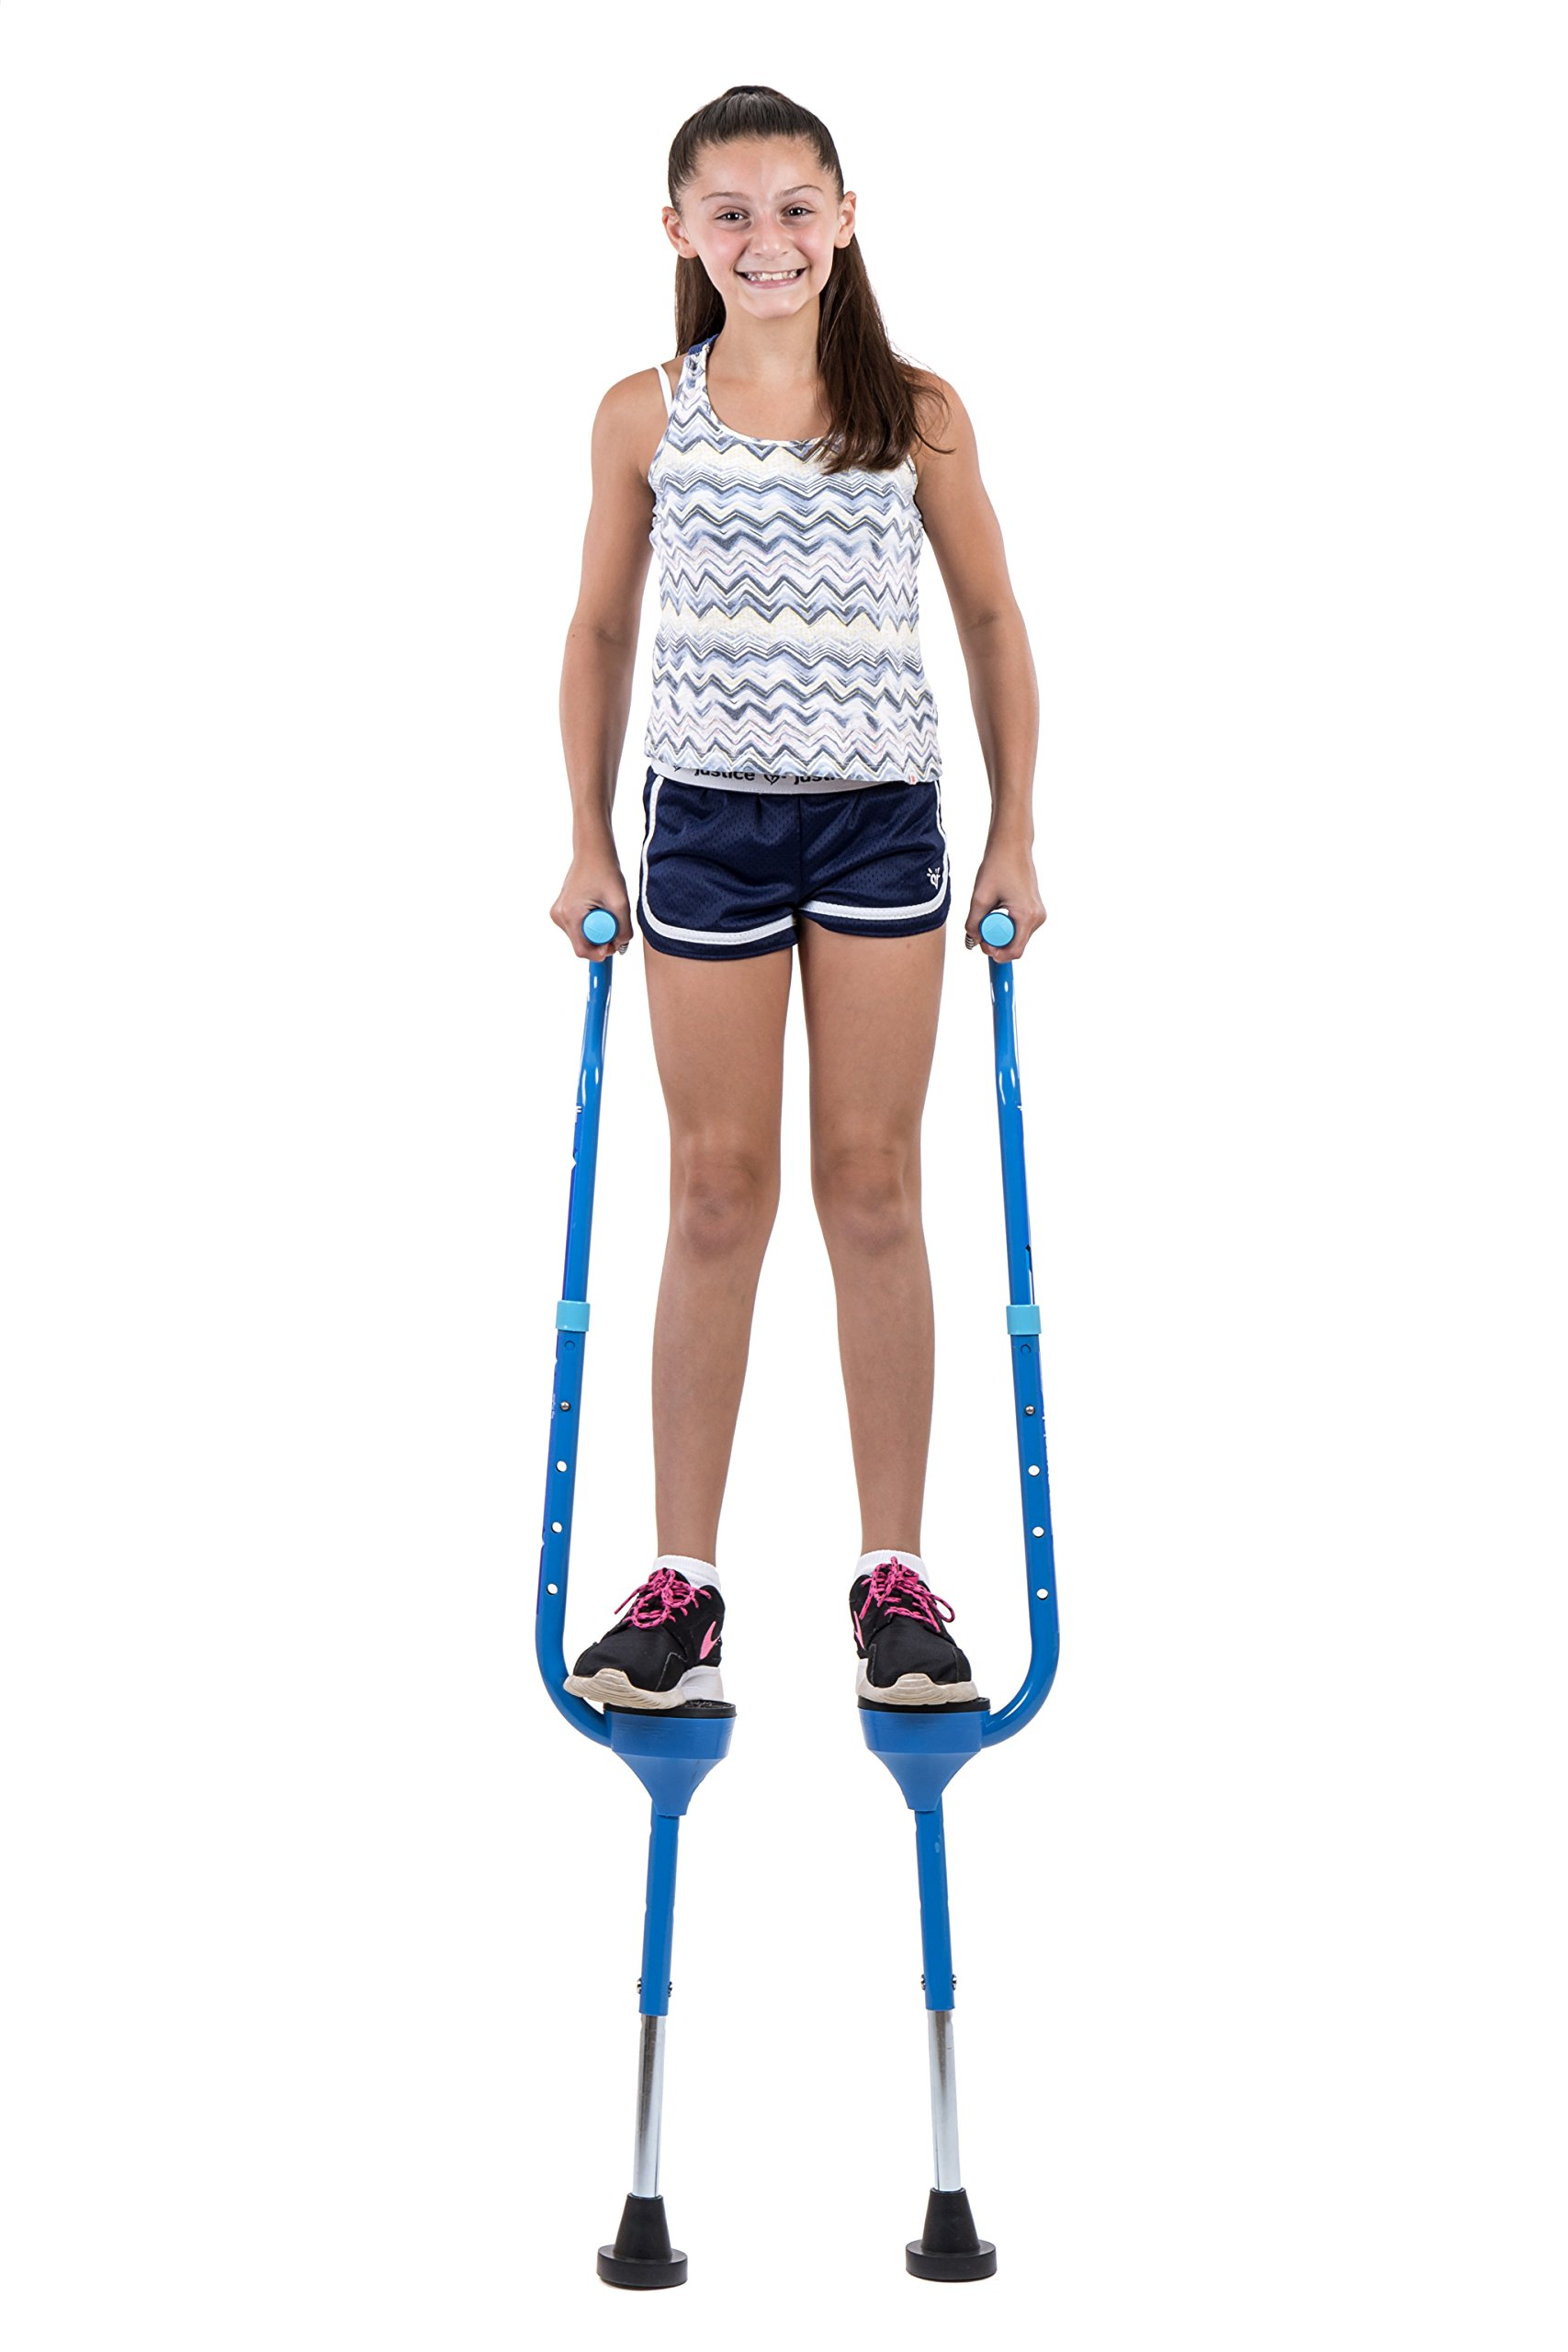 Flybar Maverick Walking Stilts for Kids Ages 5 +, Weights Up to 190 Lbs - Adjustable Foam Handles with Wide Stance Foot Pegs - Fun Outdoor Toys for Girls & Boys by Flybar